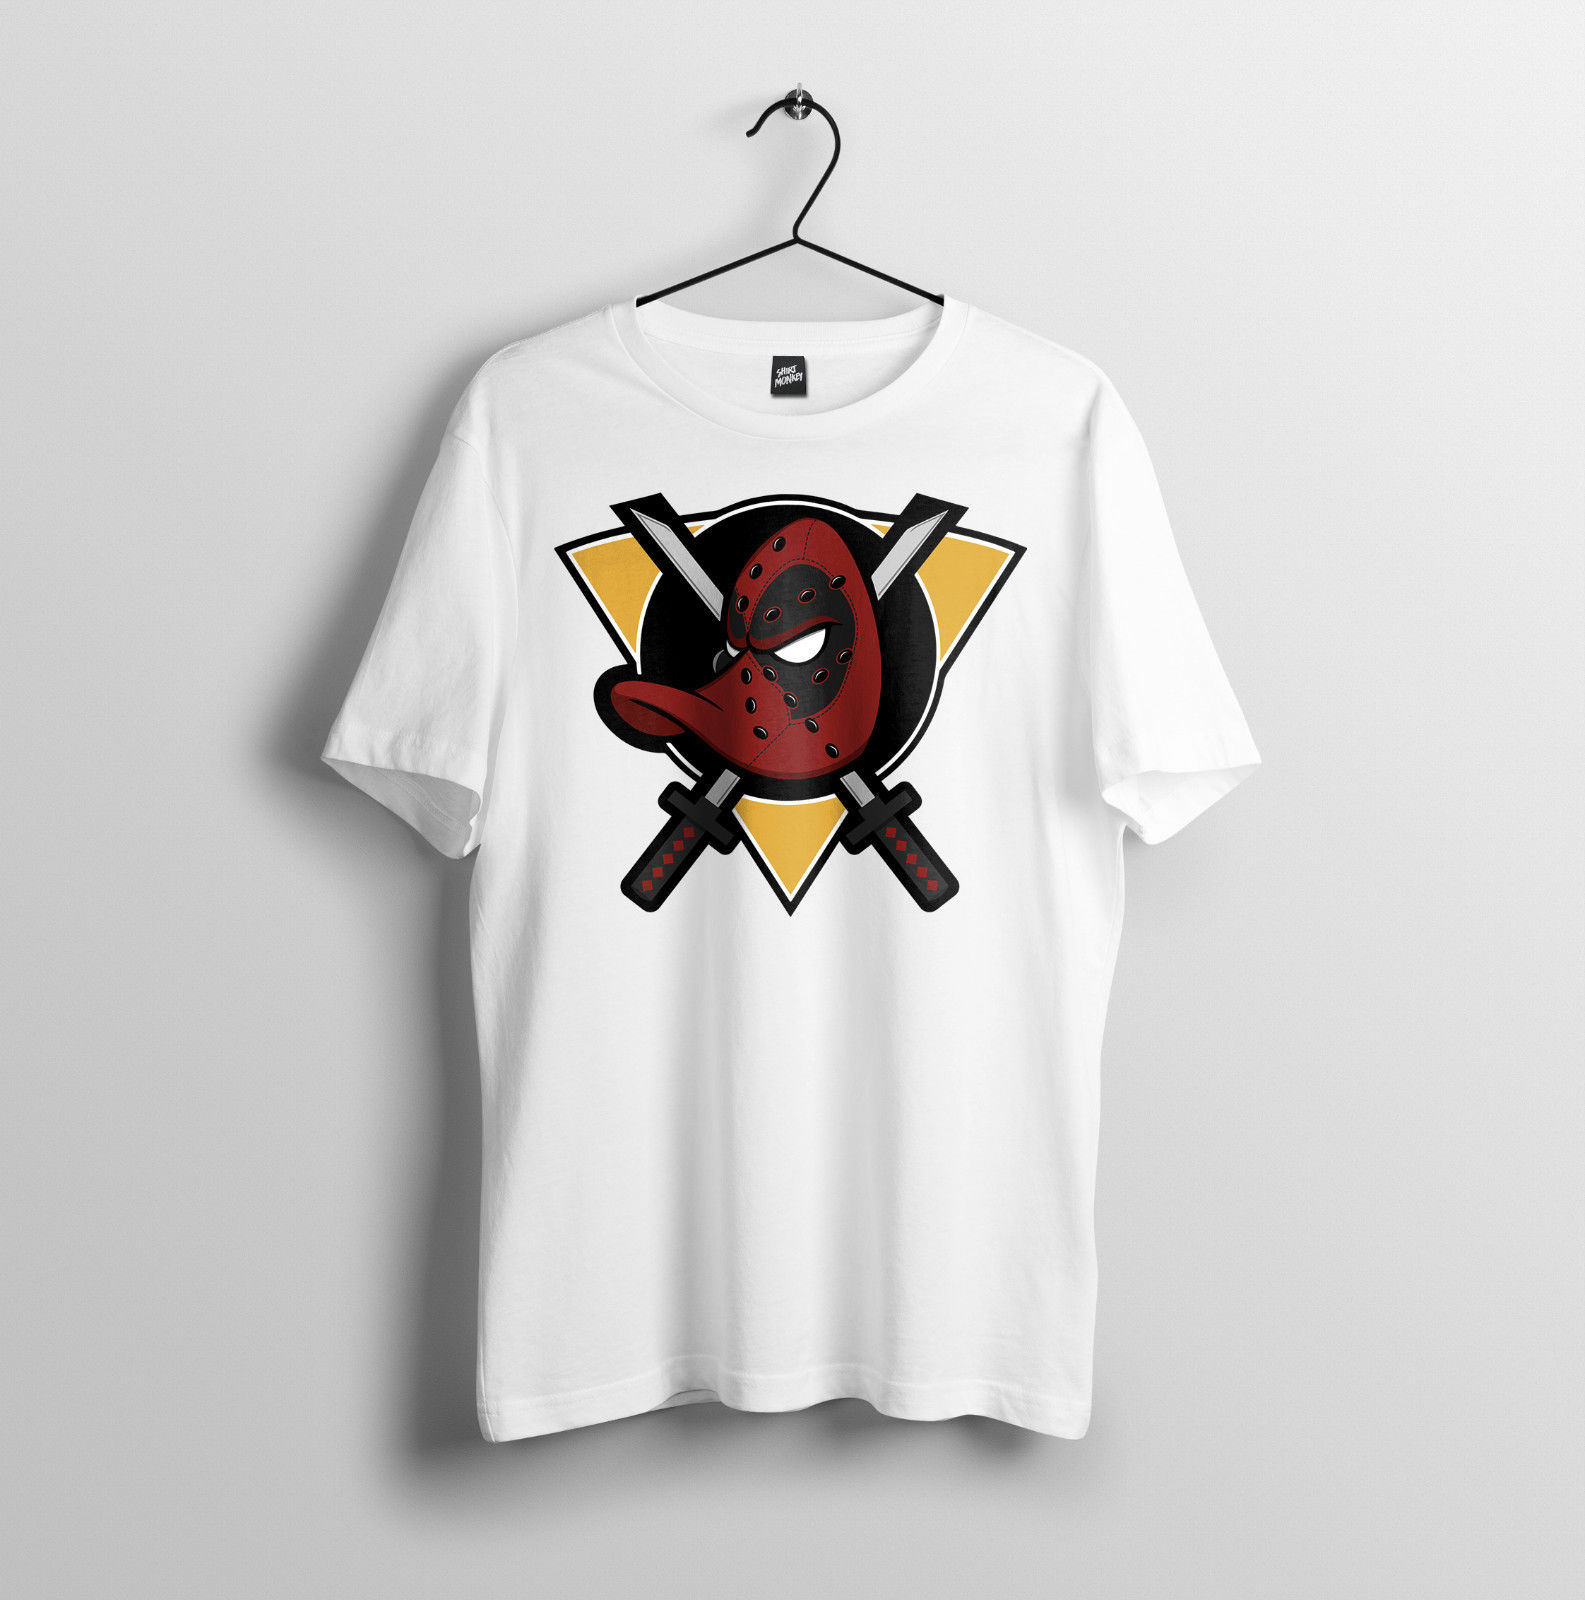 4100e2dd86be Tops Wholesale Tee Diversified In Packaging Mighty Ducks Mens Unisex T-shirt  S-2xl 100% Cotton Tee Shirt Duckpool Parody Hard-Working Deadpool Hockey